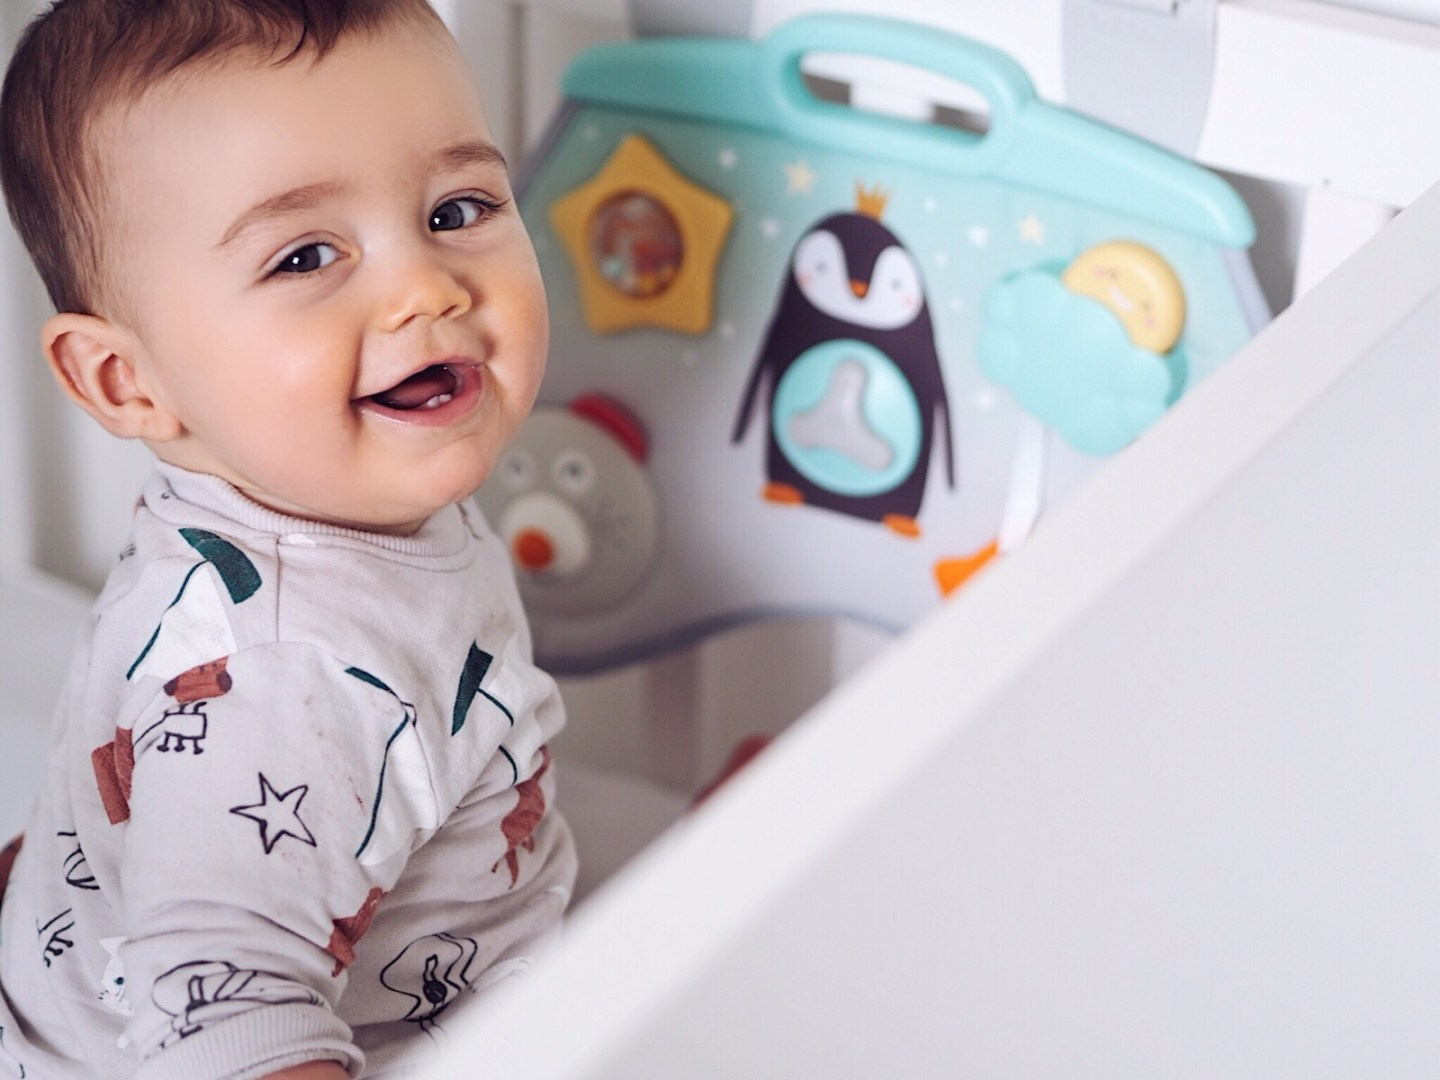 Taf Toys Laptoy Activity Centre review | The Halcyon Years (baby boy playing in a white cot with a grey flat toy attached to the side)